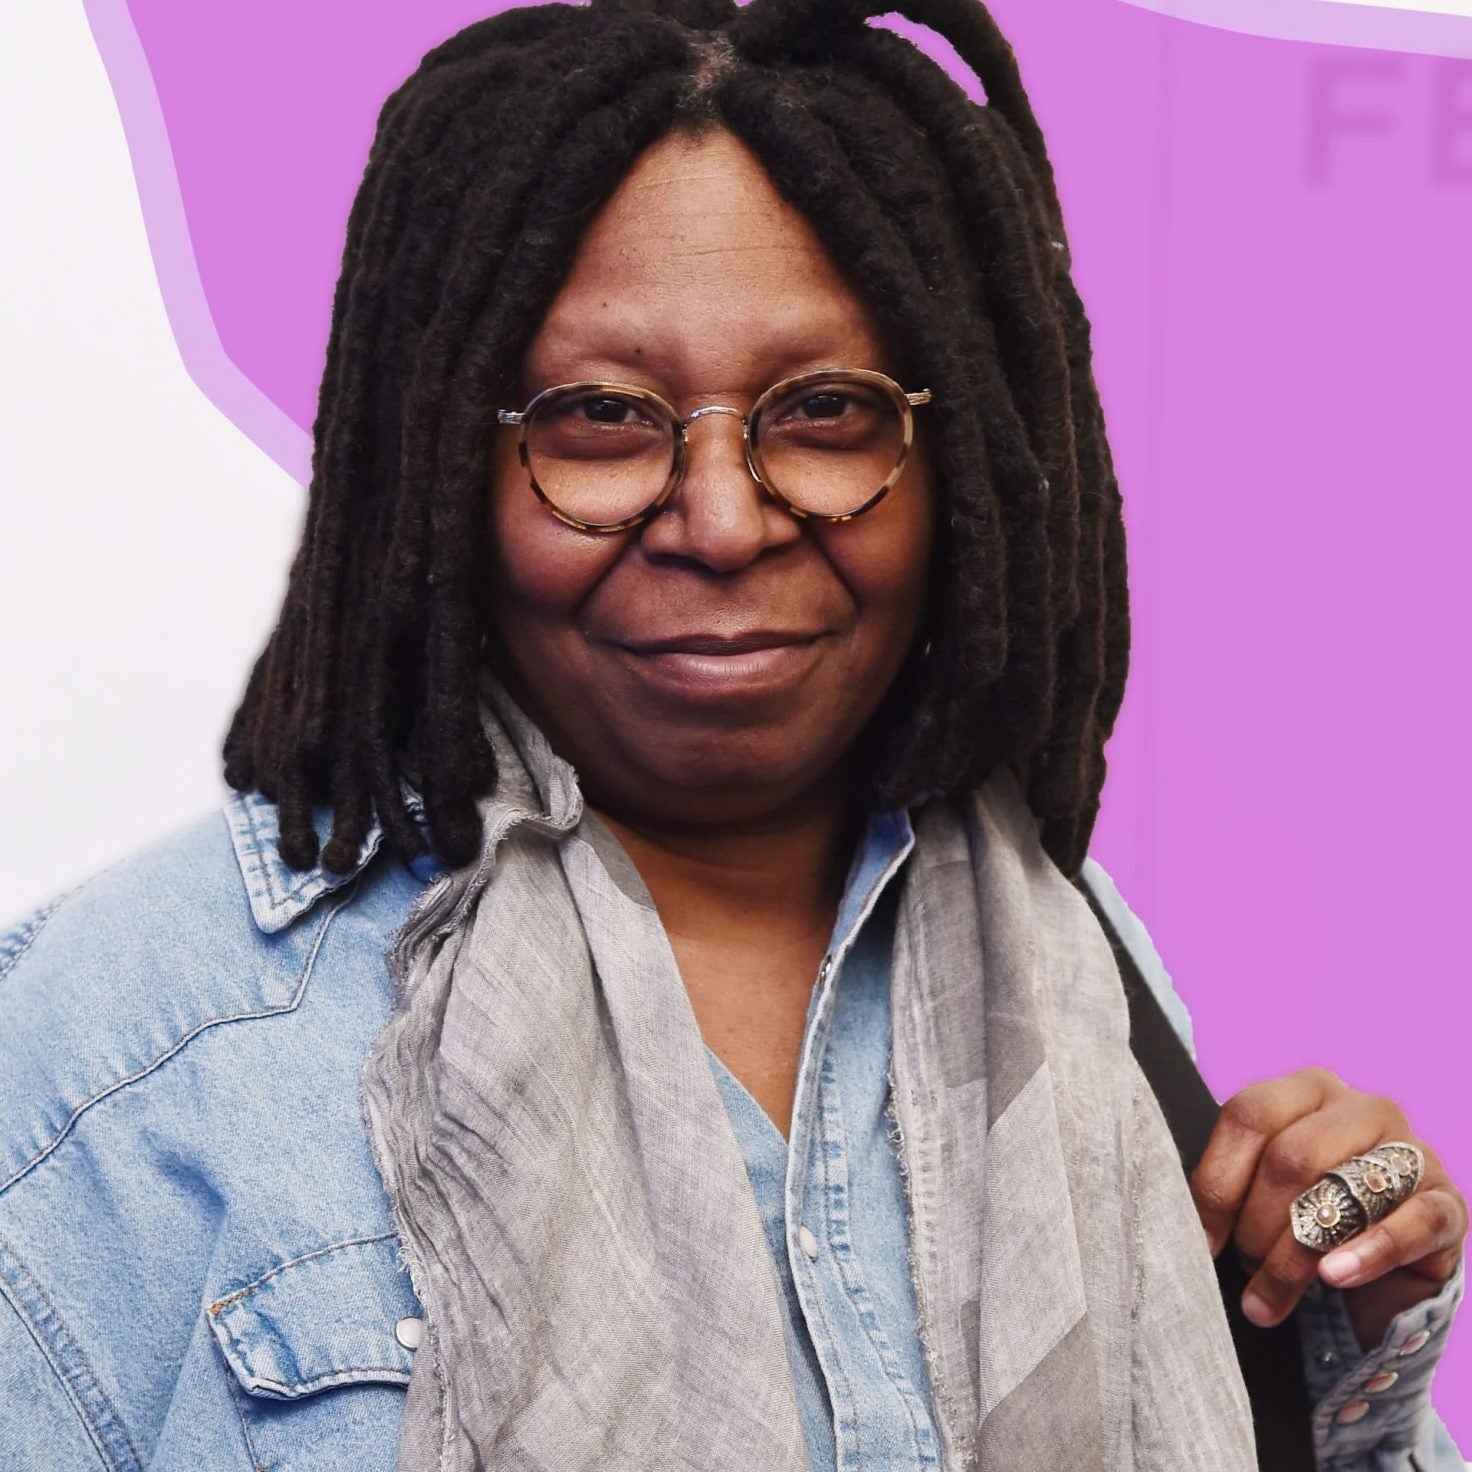 Whoopi Goldberg Is 'Trying To Take It Slowly' After Battle With Pneumonia